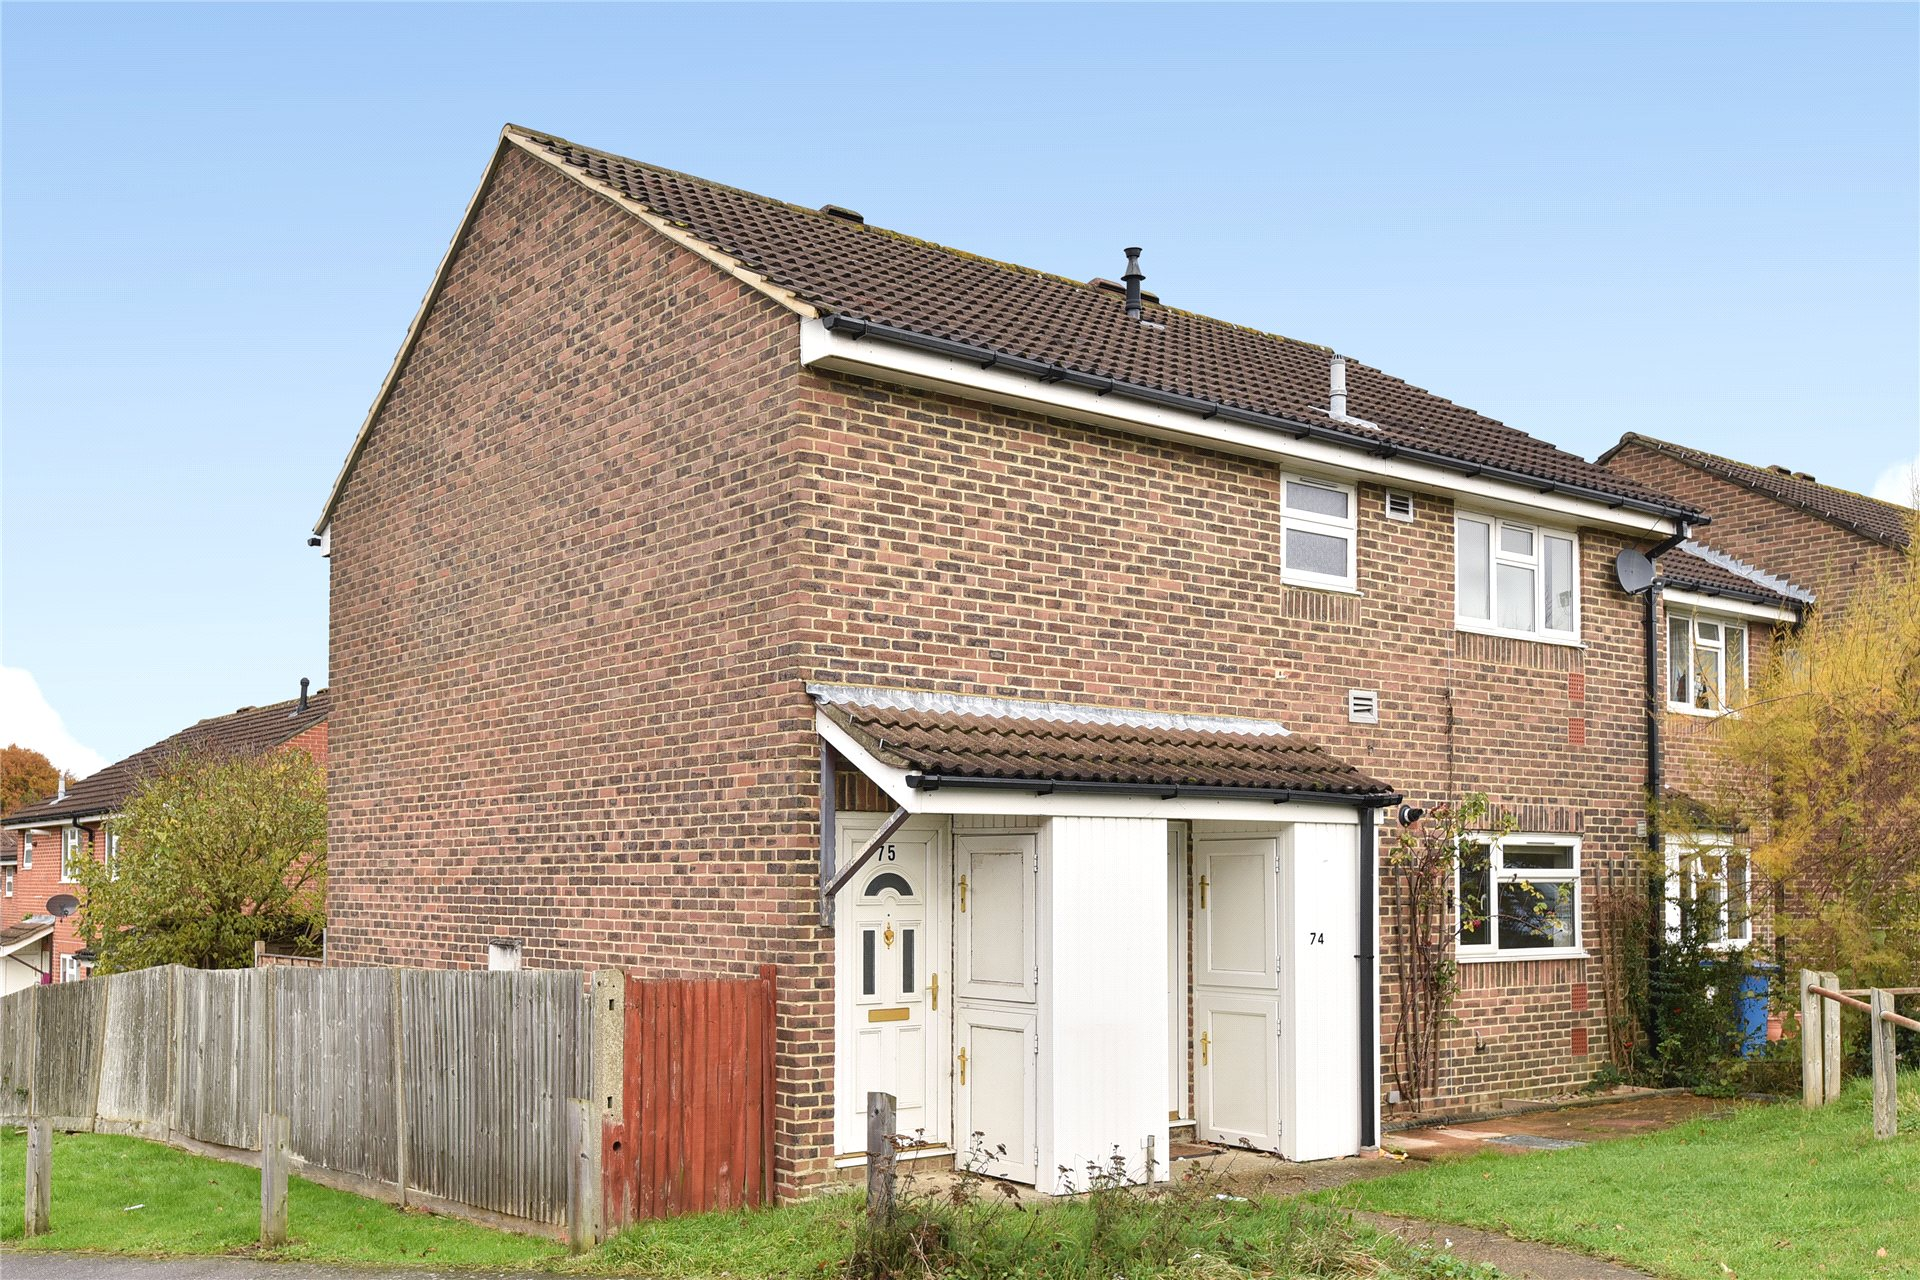 2 Bedrooms Maisonette Flat for sale in Humber Way, Sandhurst, Berkshire, GU47